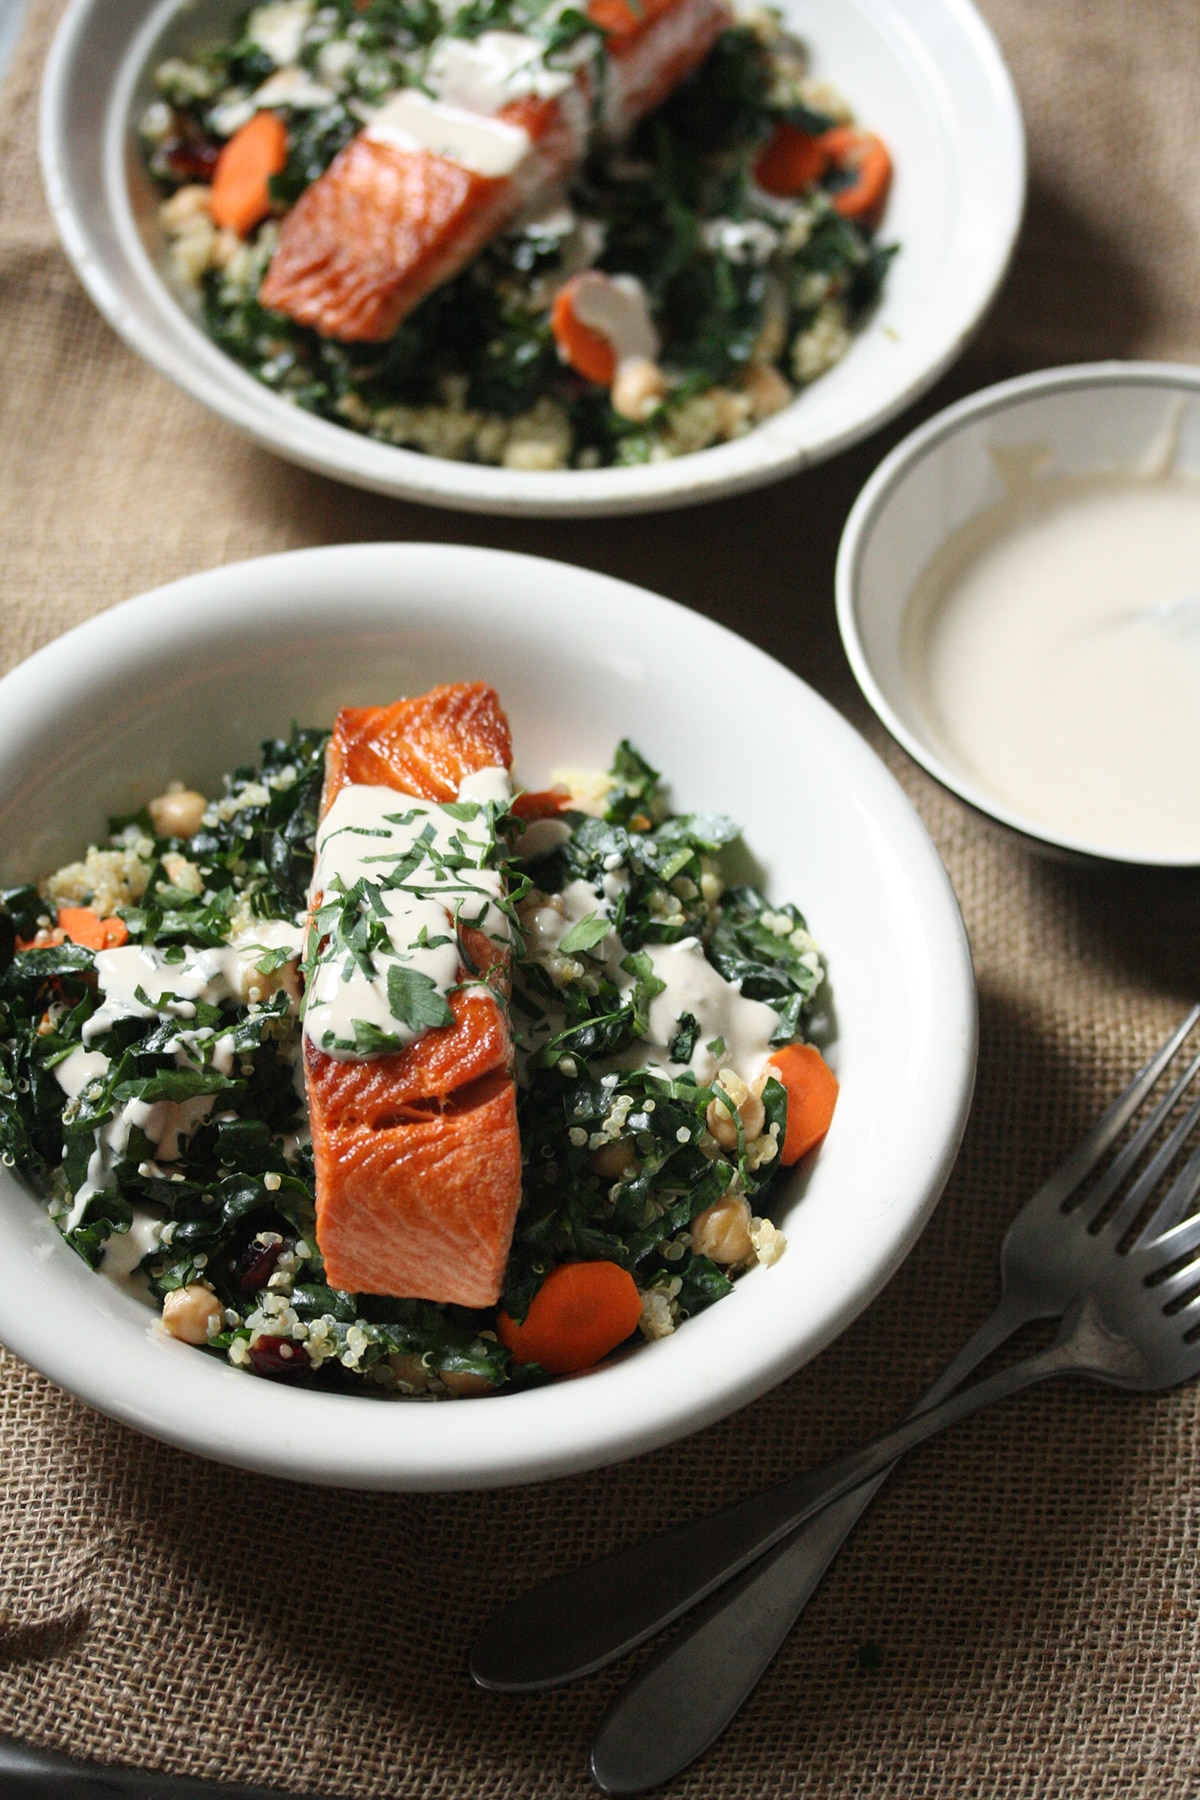 Salmon kale and quinoa bowls healthy recipes sbs food salmon kale and quinoa bowls with tahini sauce httpssbsfood recipessalmon kale and quinoa bowls tahini sauce forumfinder Images